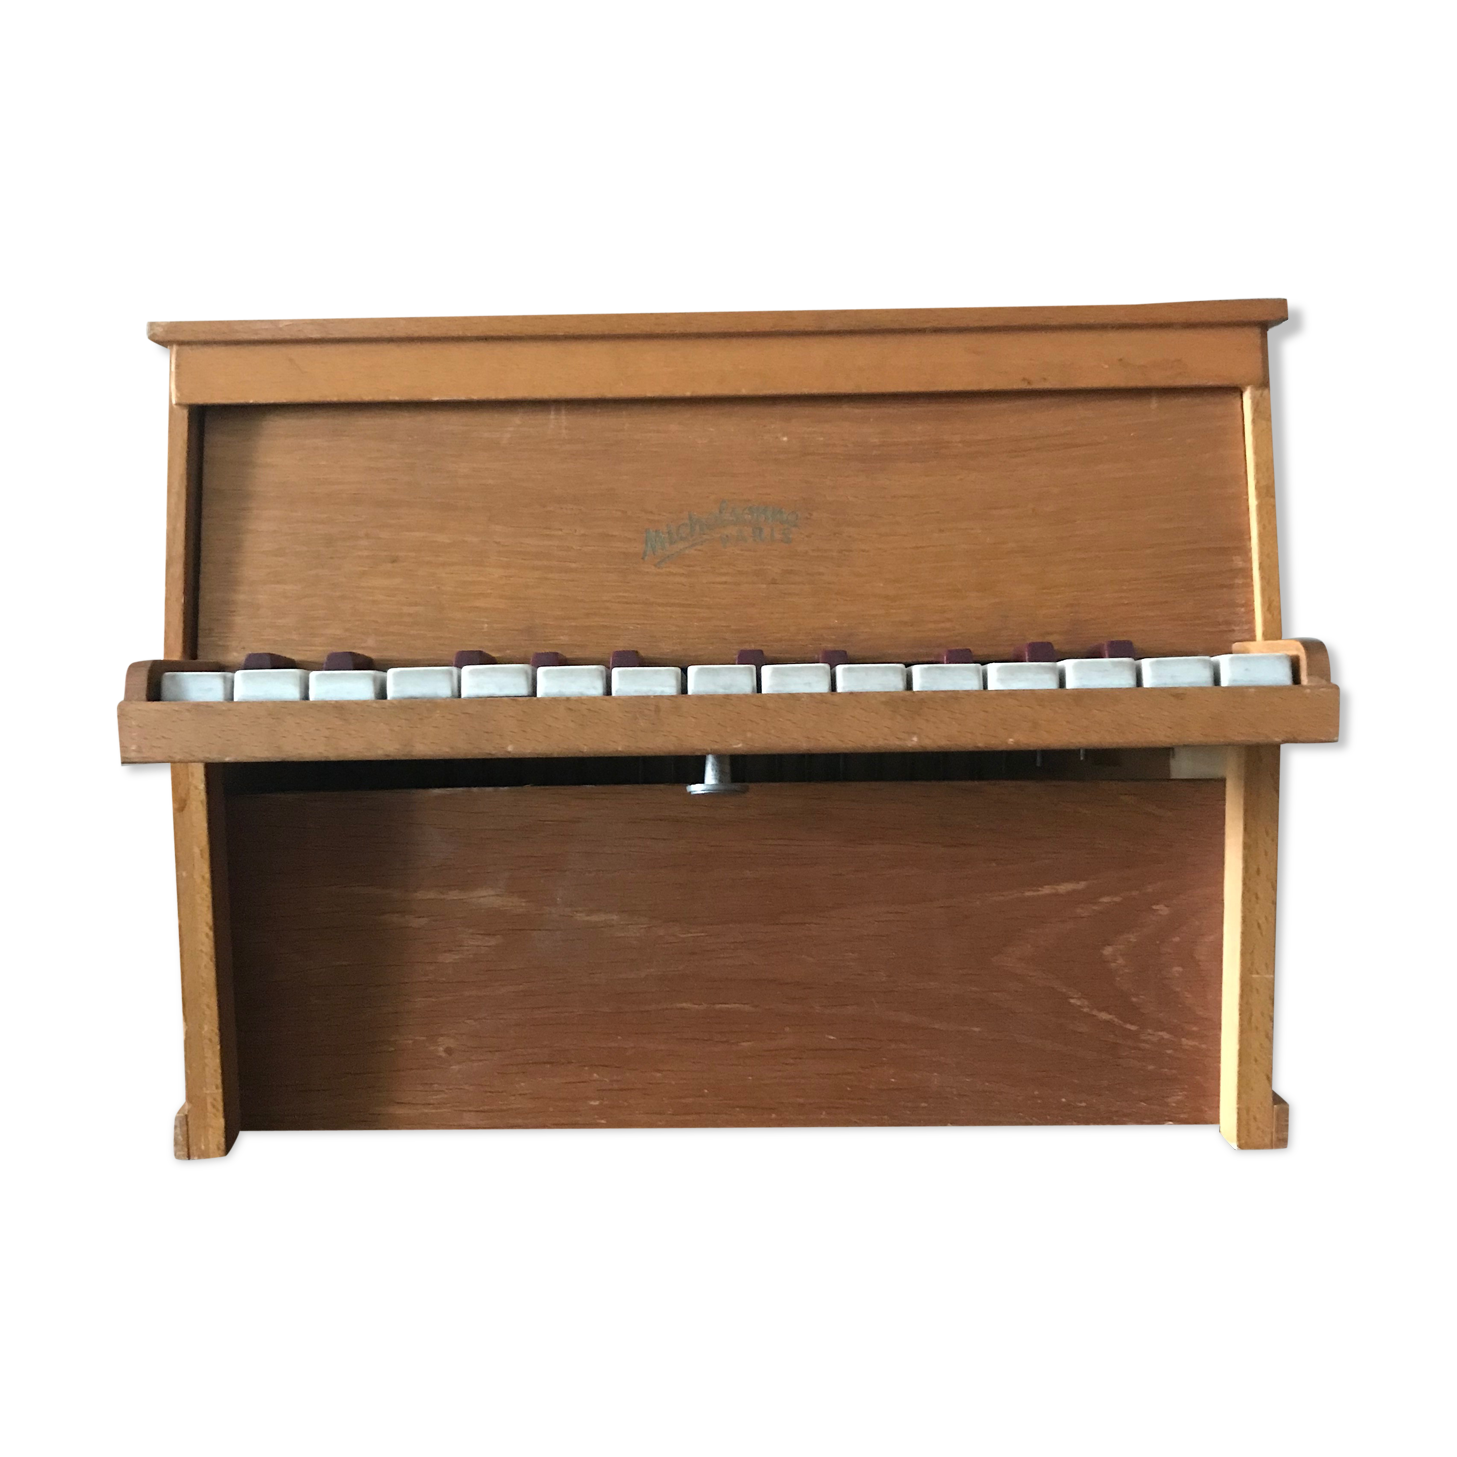 MICHELSONNE PARIS in very good condition toy piano jouet ORIGINAL